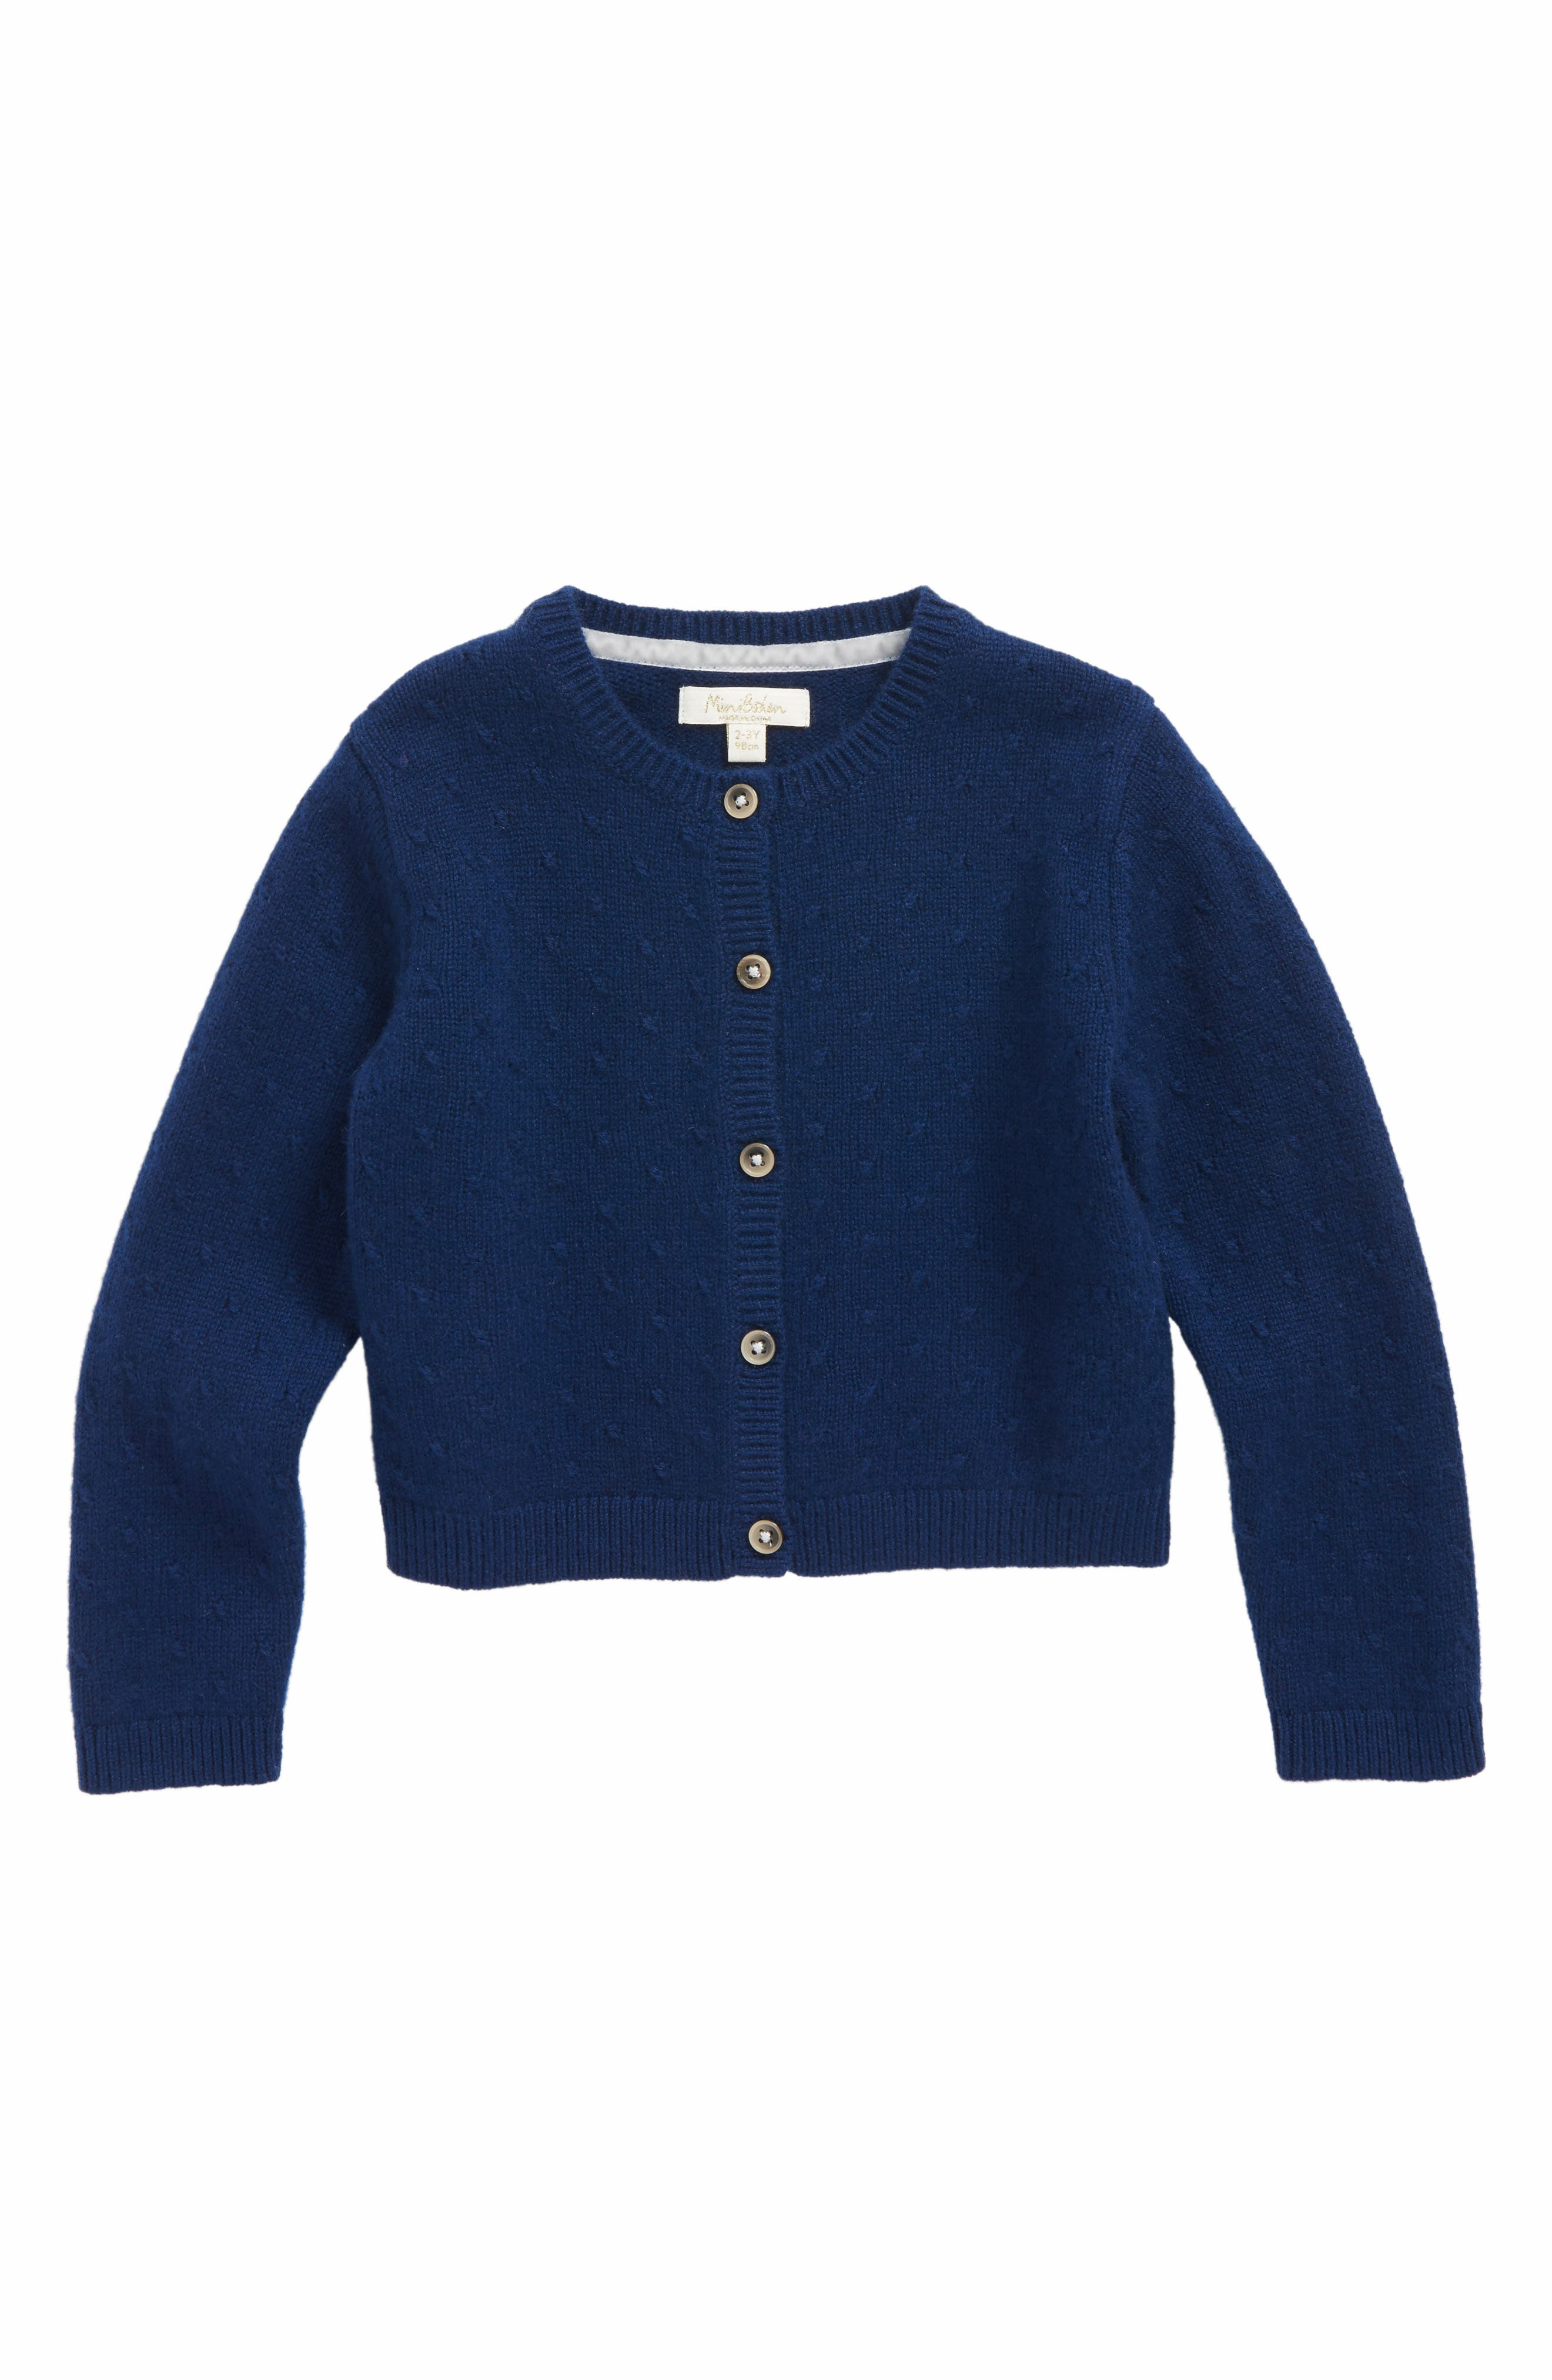 Cashmere Cardigan,                         Main,                         color, Navy